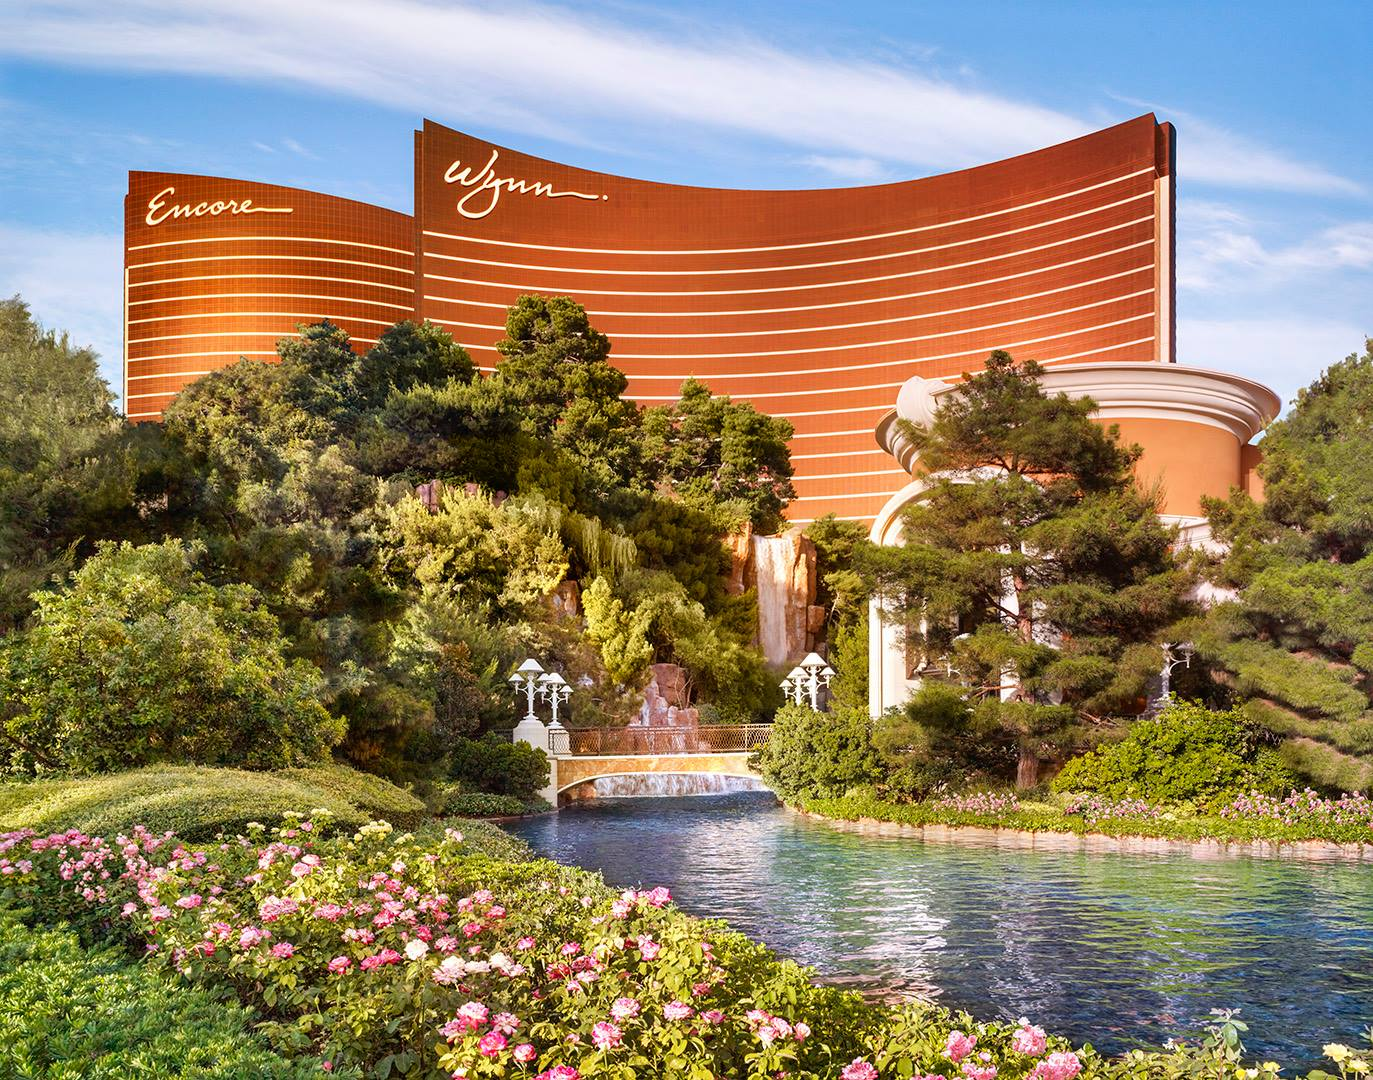 photo credit: Wynn Las Vegas official Facebook page